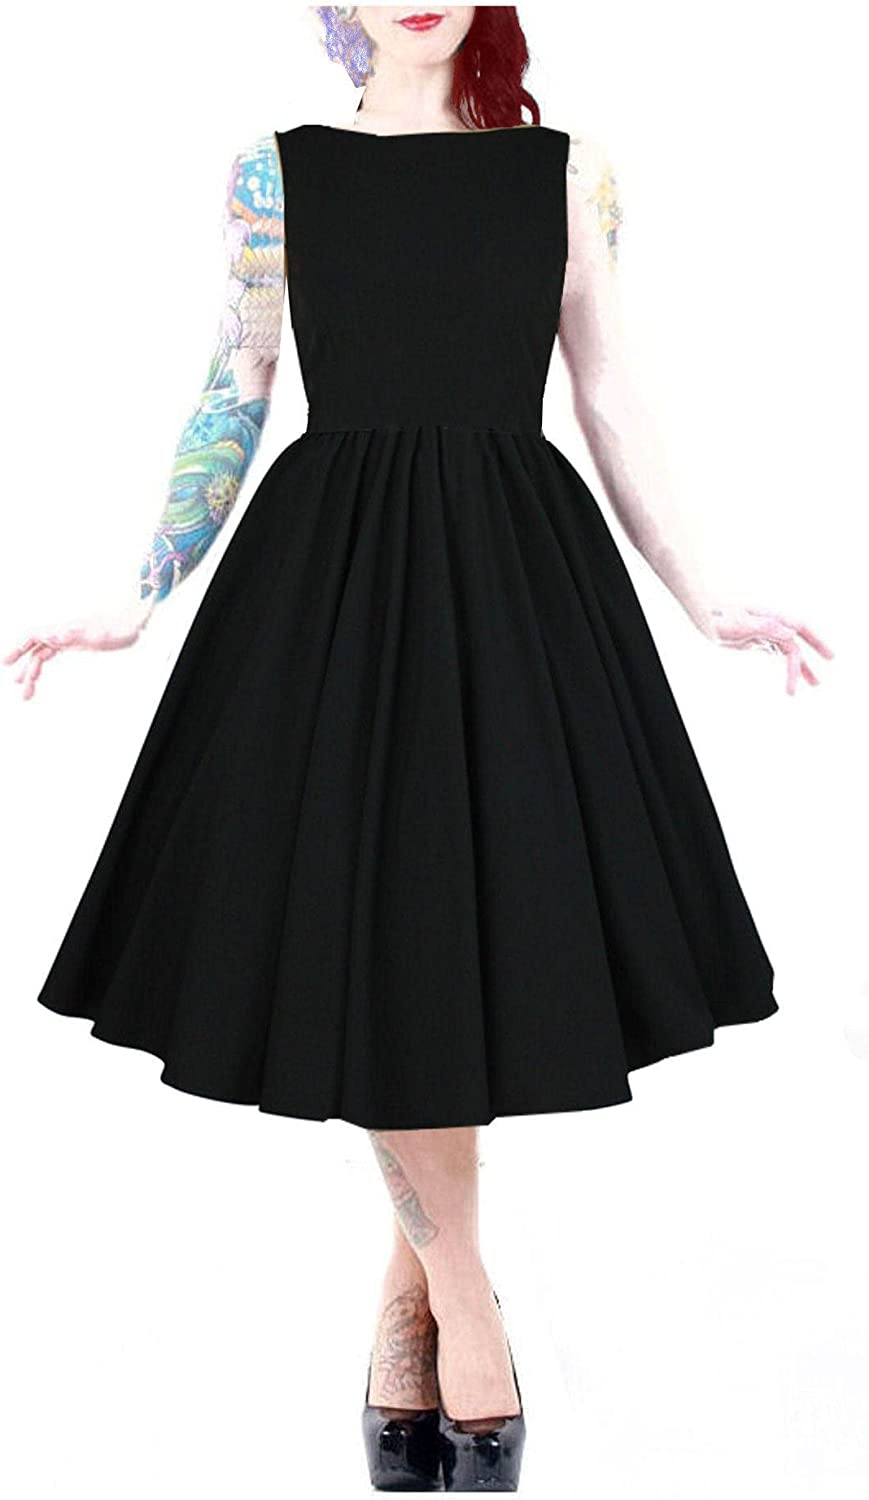 DangerousFX 50's Flare Black Flattering Boat Neck Swing Dress 1018